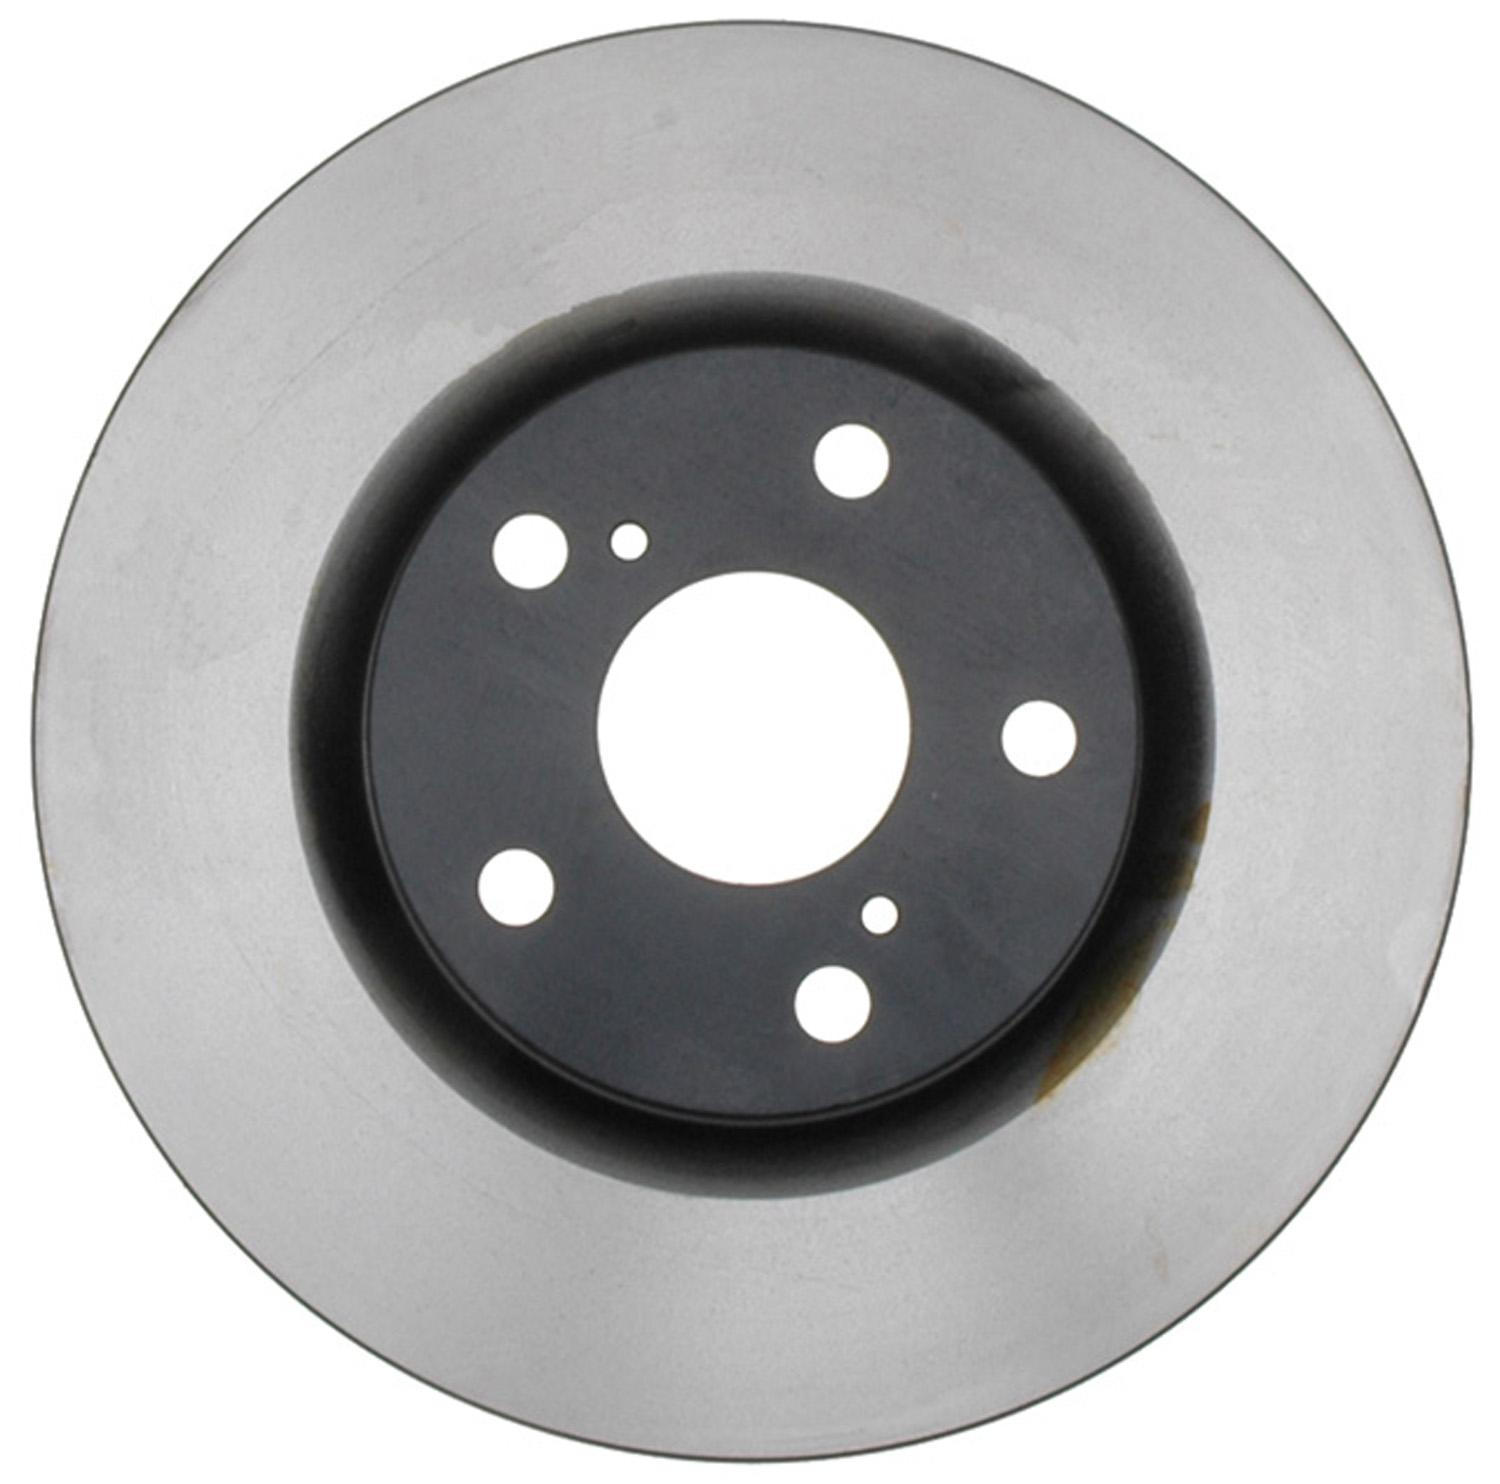 ACDELCO PROFESSIONAL BRAKES - Disc Brake Rotor (Front) - ADU 18A2448